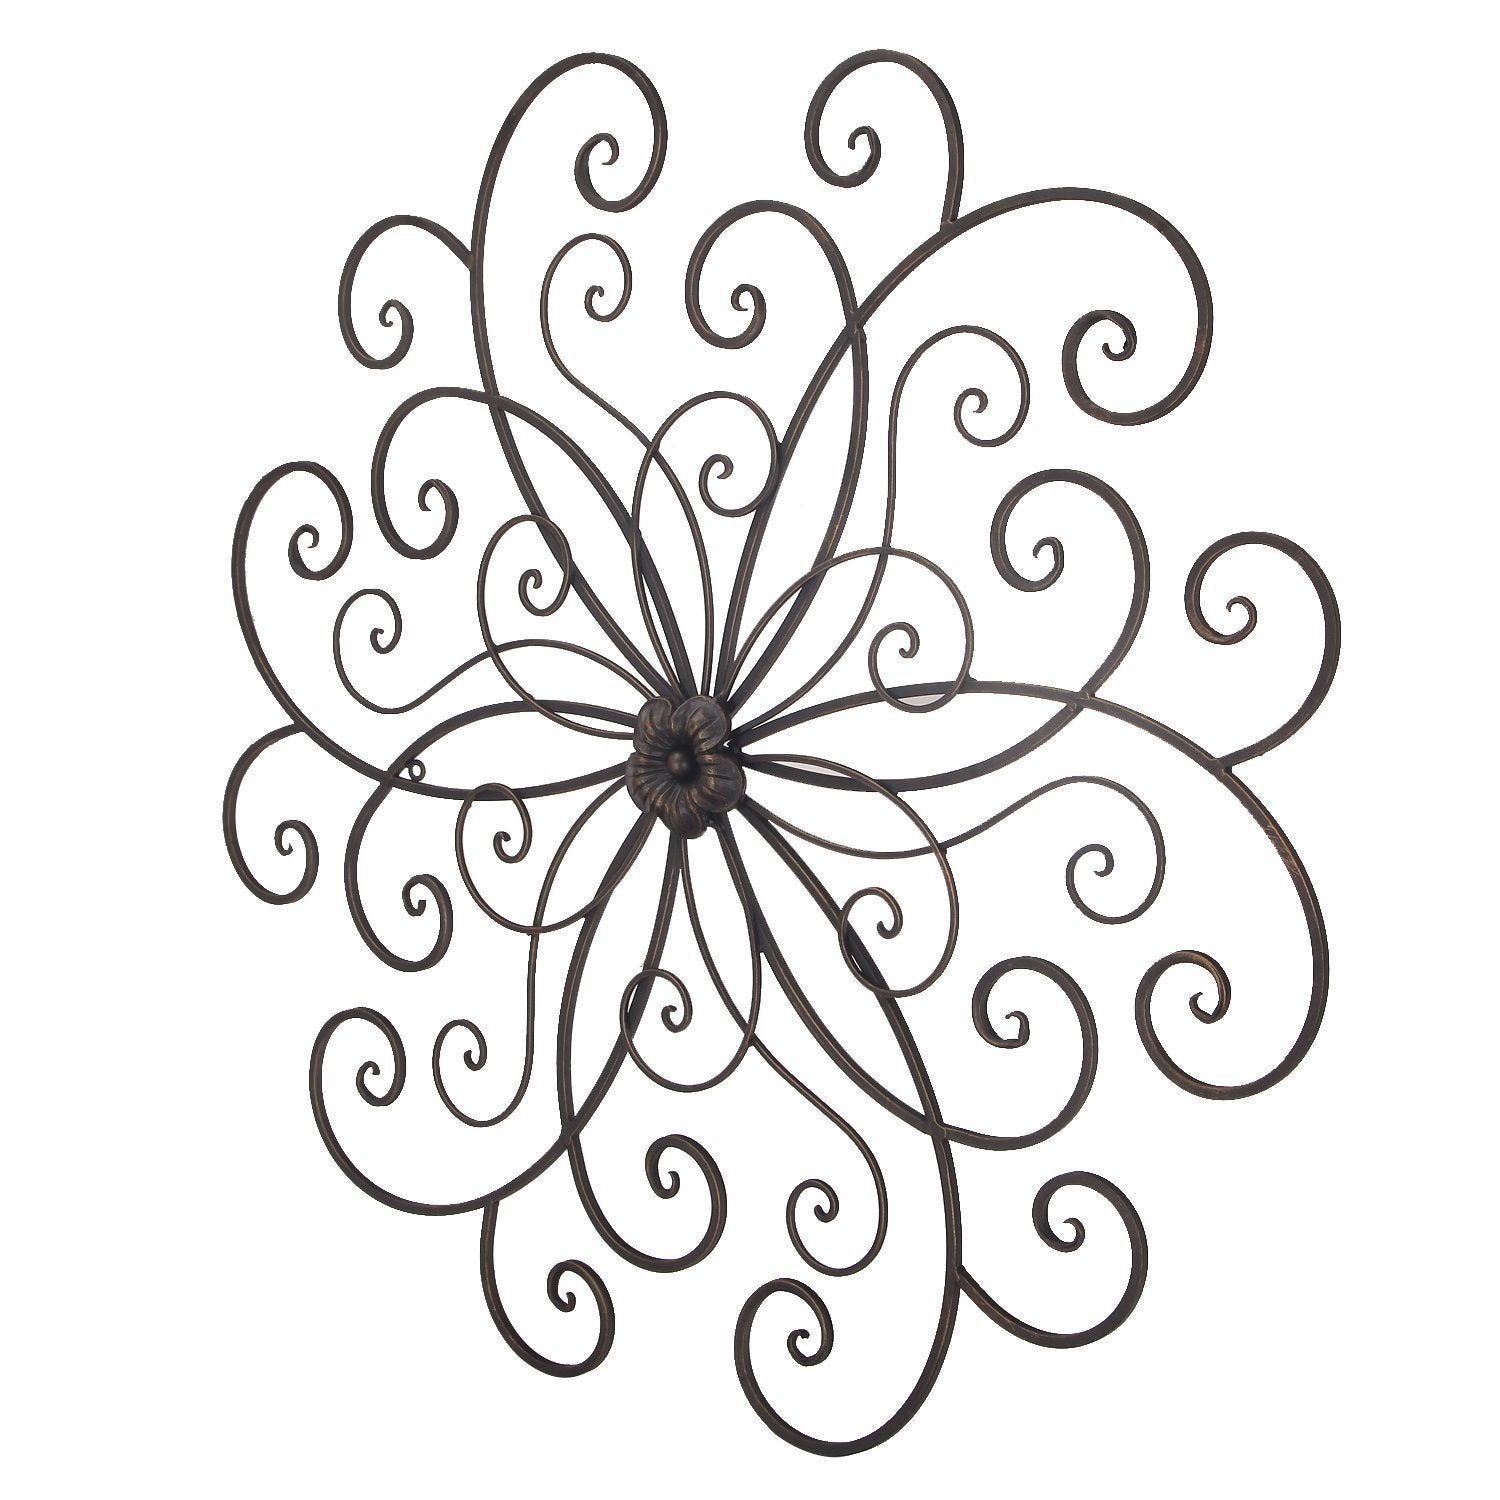 Adeco Bronze Flower Urban Design Metal Wall Decor For Nature Home Art with regard to Flower Urban Design Metal Wall Decor (Image 2 of 30)